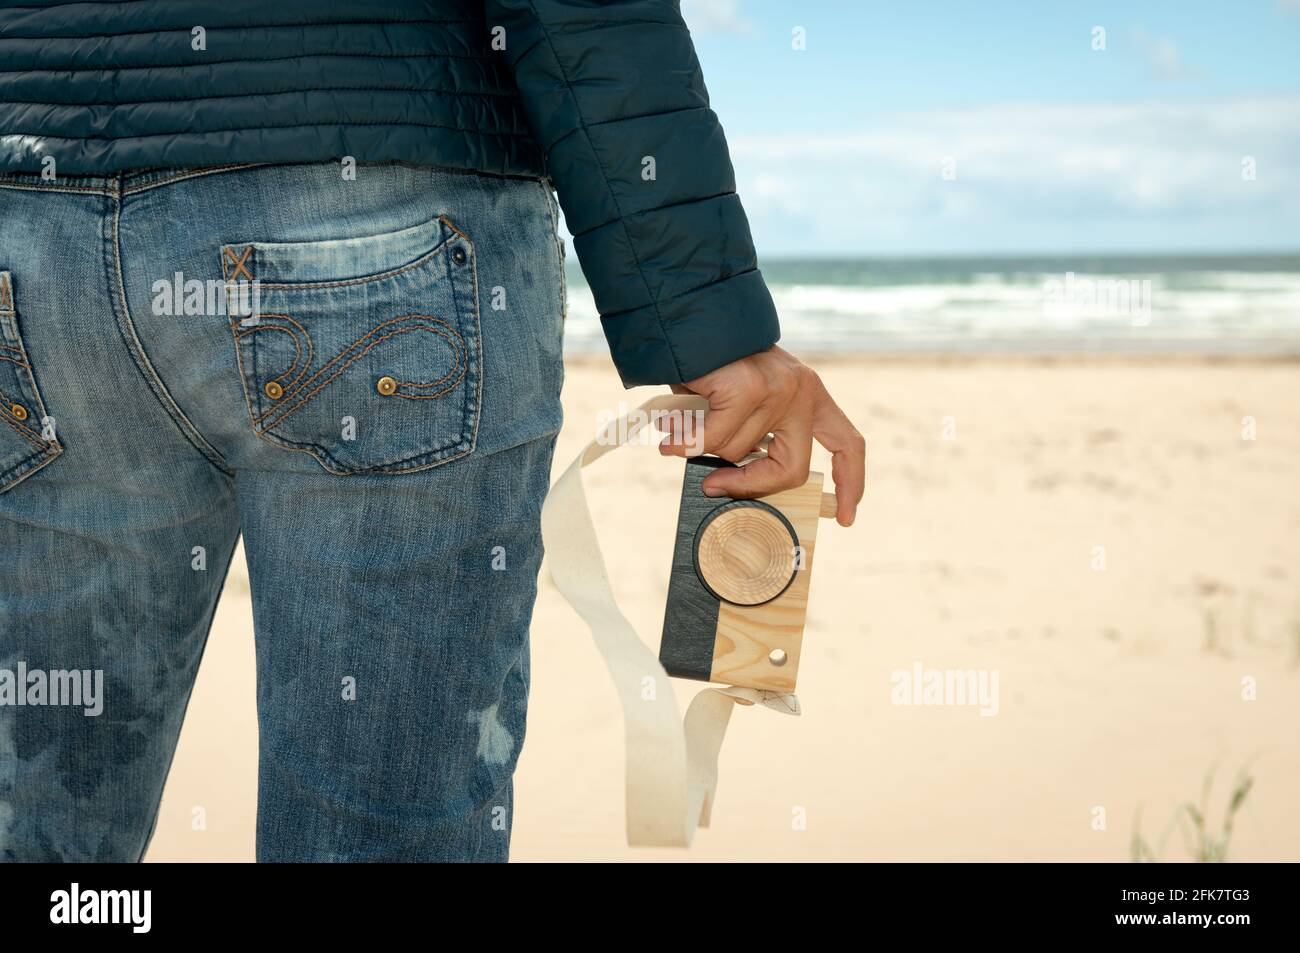 close-up-of-womans-hand-holding-an-wooden-toy-photo-camera-against-sandy-beach-background-fun-photography-concept-2FK7TG3.jpg